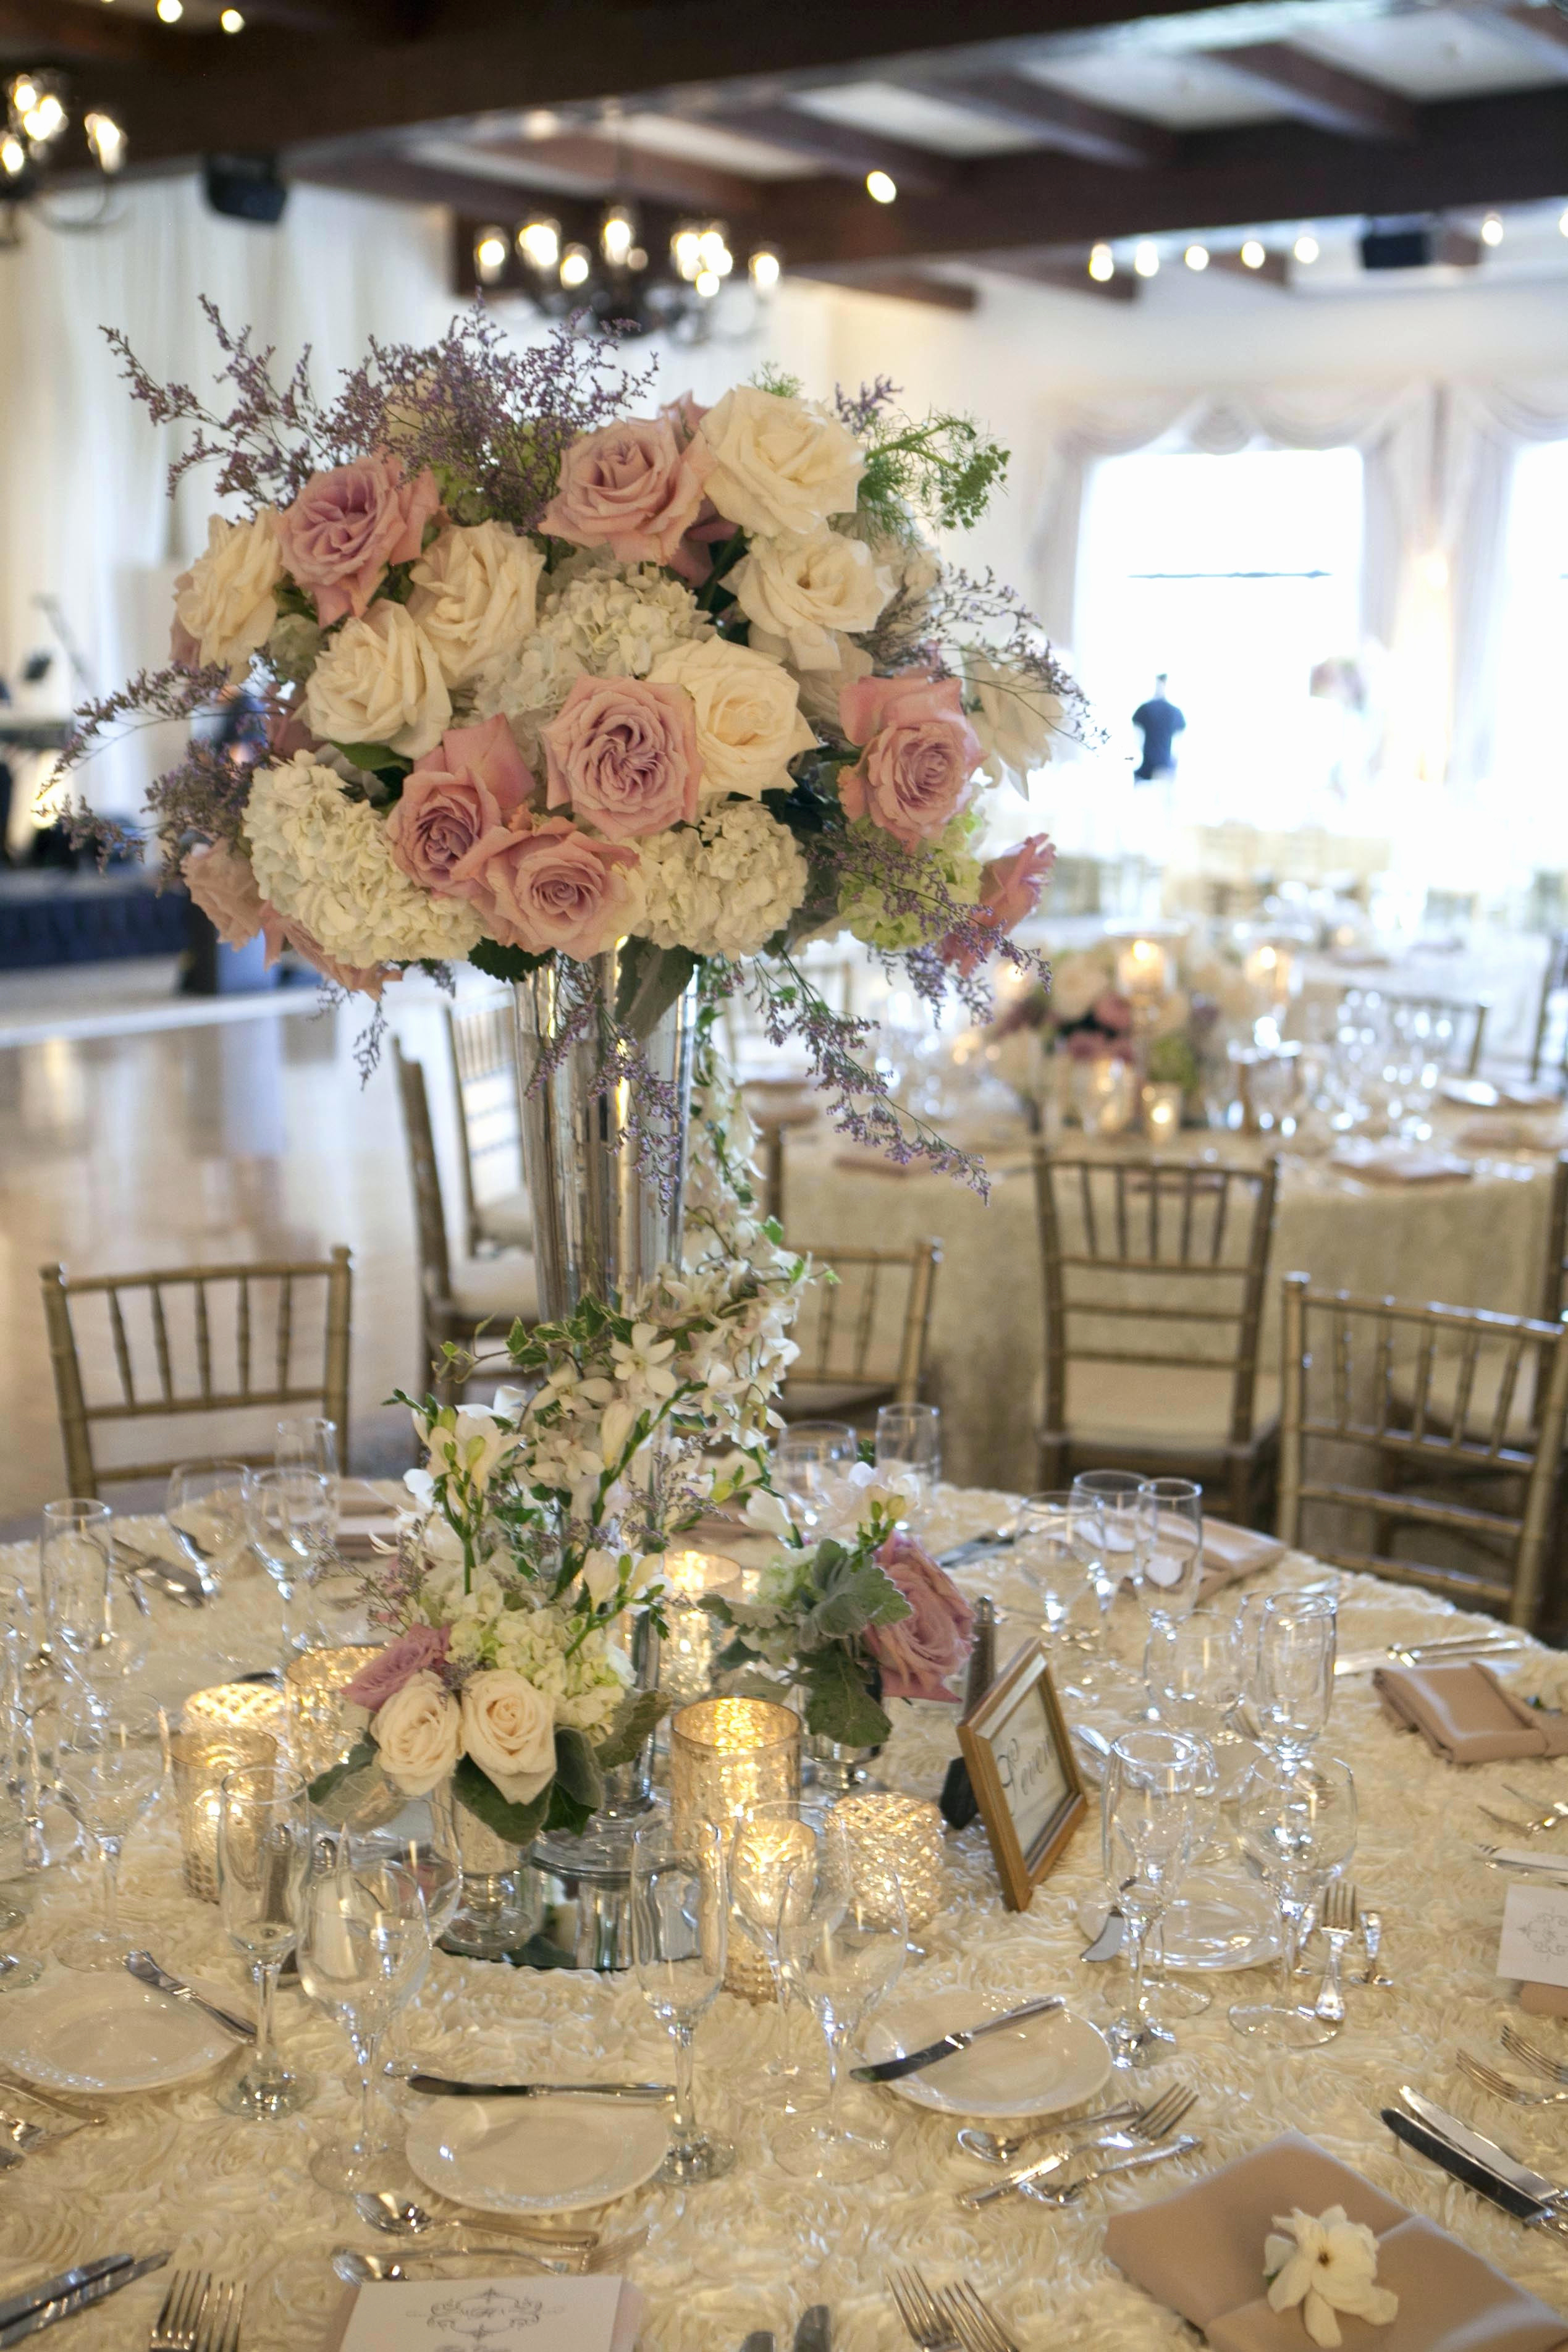 vases for wedding centerpieces wholesale of sequin tablecloth wholesale the best fancy cheap glass vases for with regard to sequin tablecloth wholesale luxury fancy cheap glass vases for wedding centerpieces frieze wedding